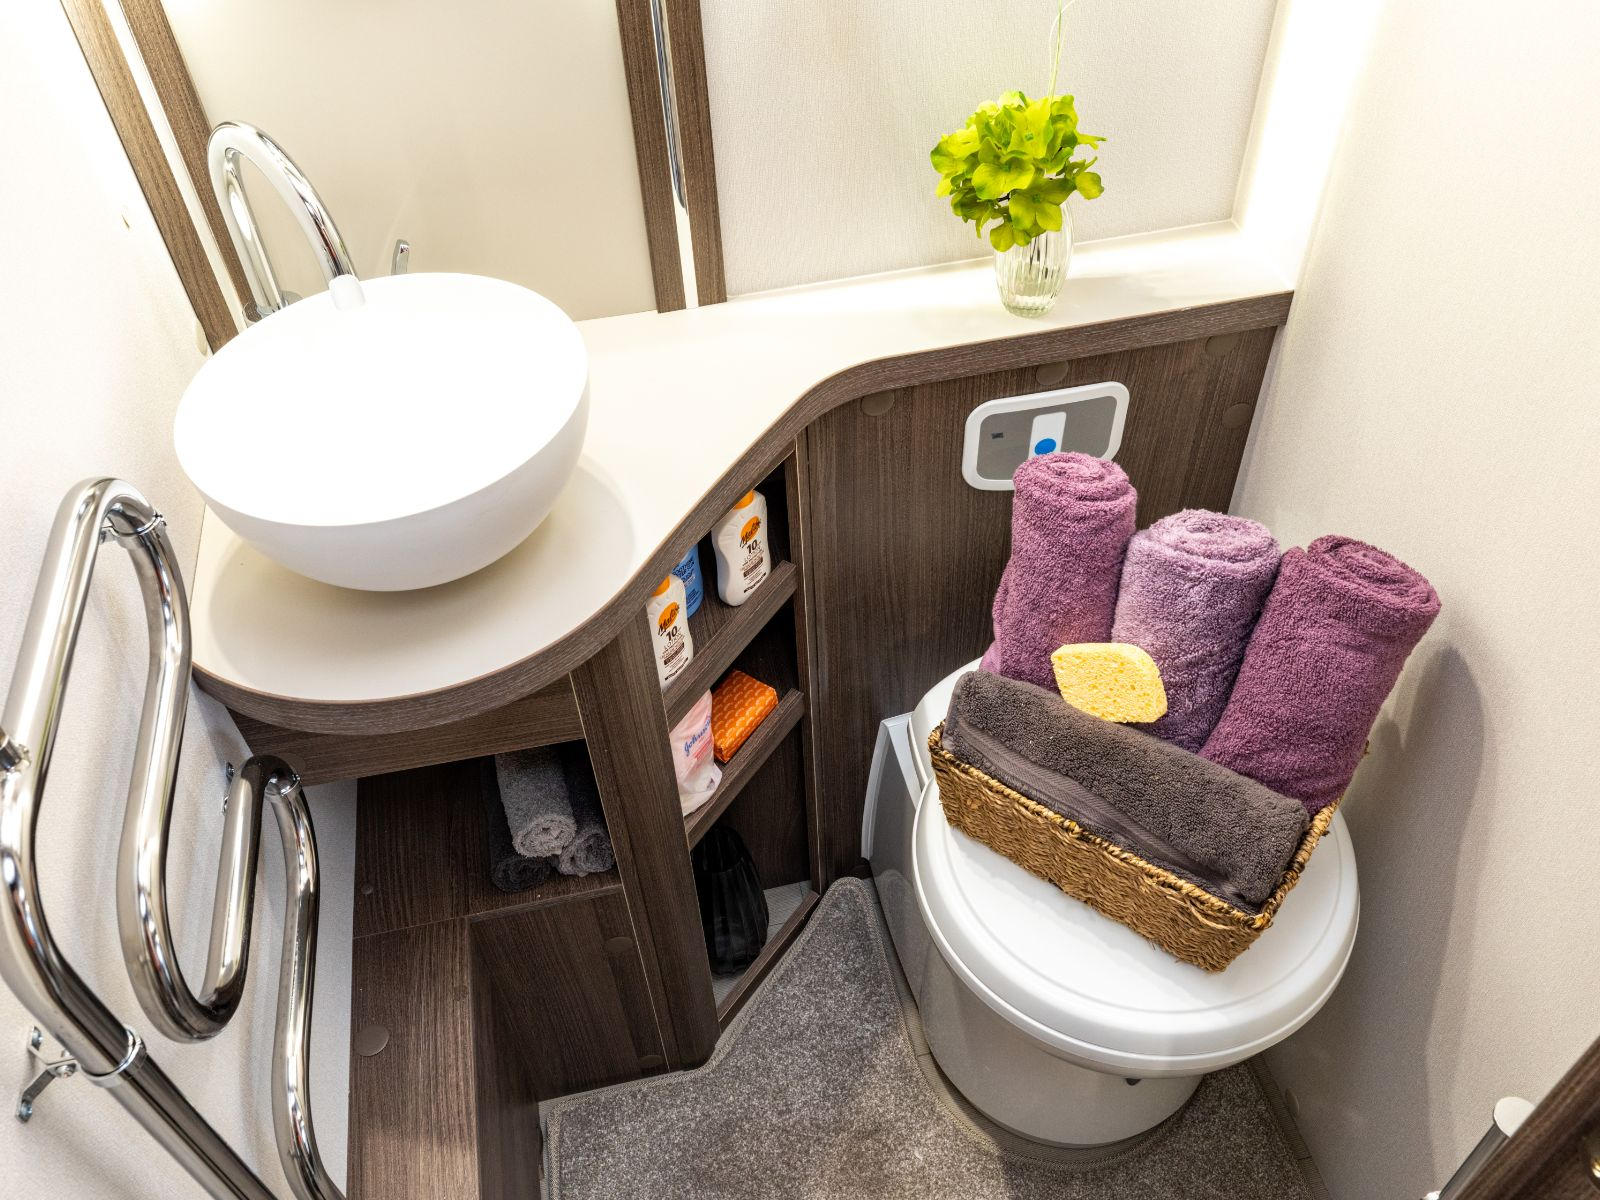 Toilet and sink with basket of towels on top of toilet and storage with toiletries '